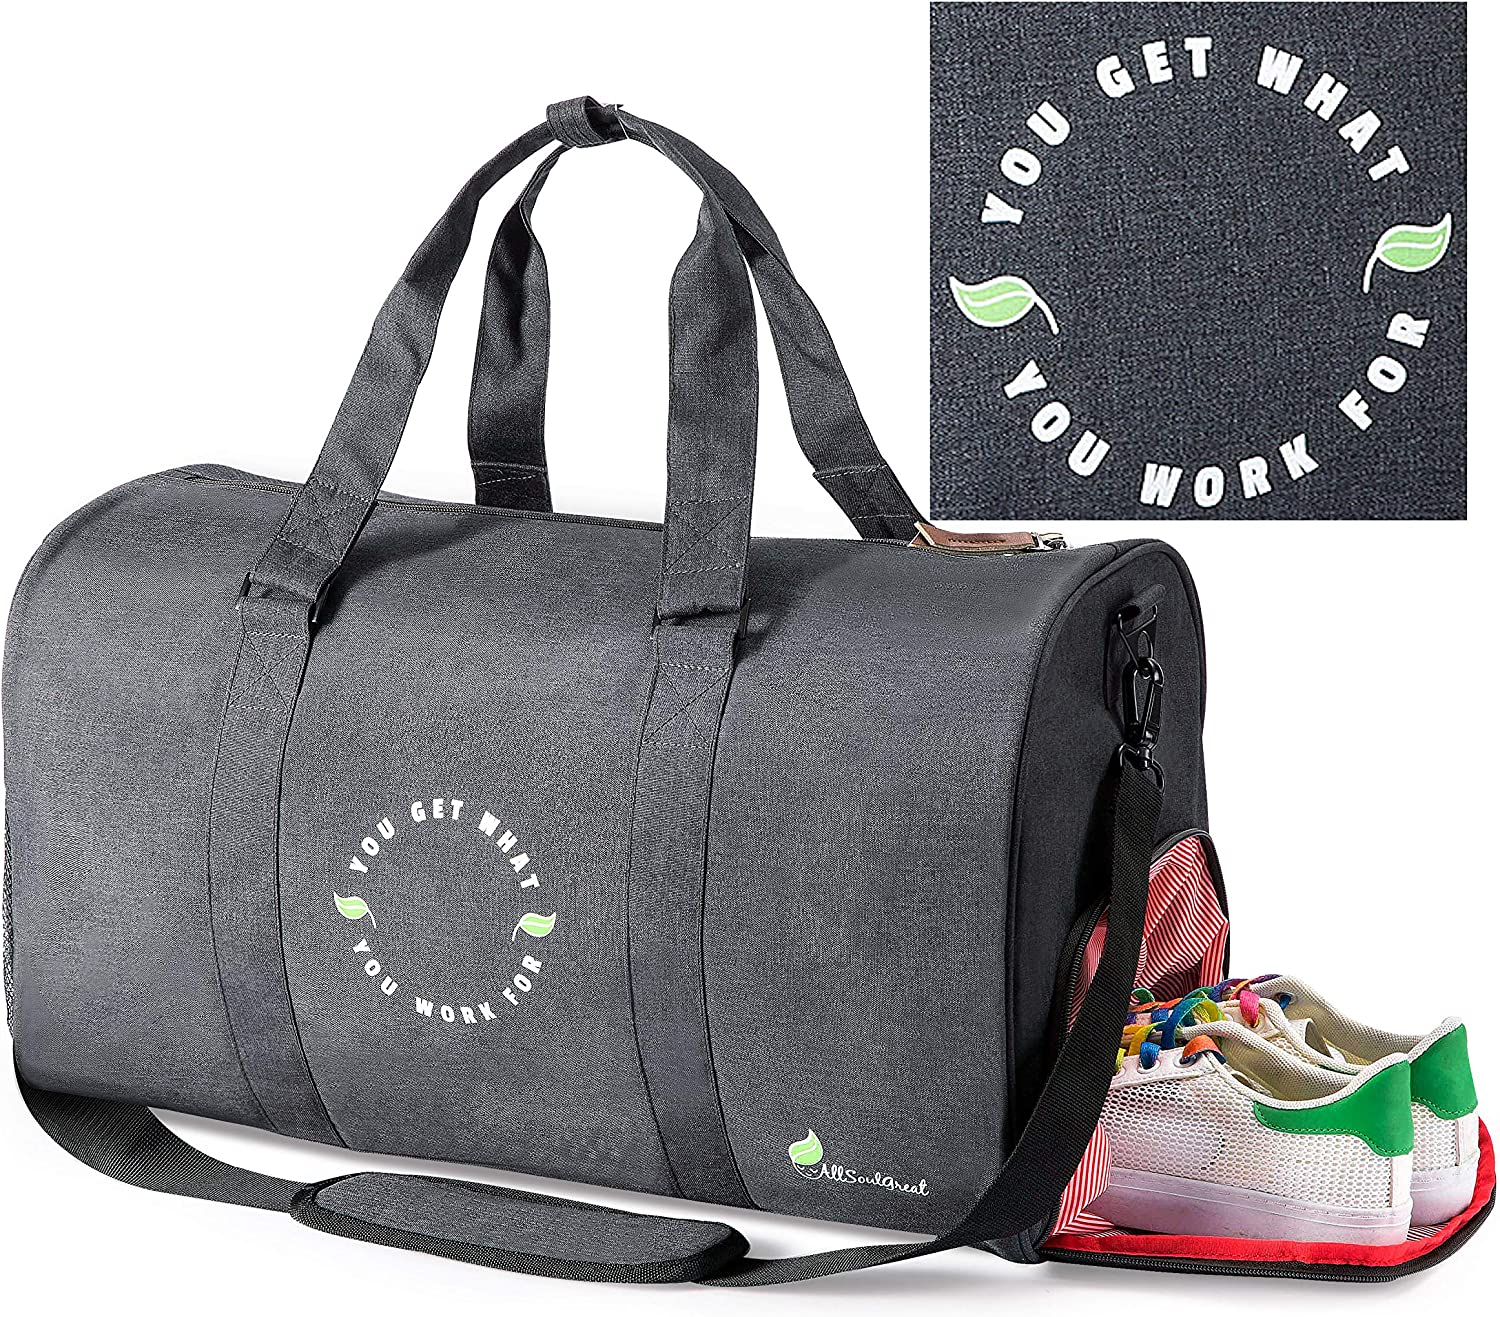 All Soul Great Gym Bag Duffel Gym Bag Black Weekender Duffel Bag with Shoe Compartment   For Men/Women/Boys/Girls/Workout/Crossfit/Sport/Gym/Travel/Fitness/Yoga/Athletes/Office